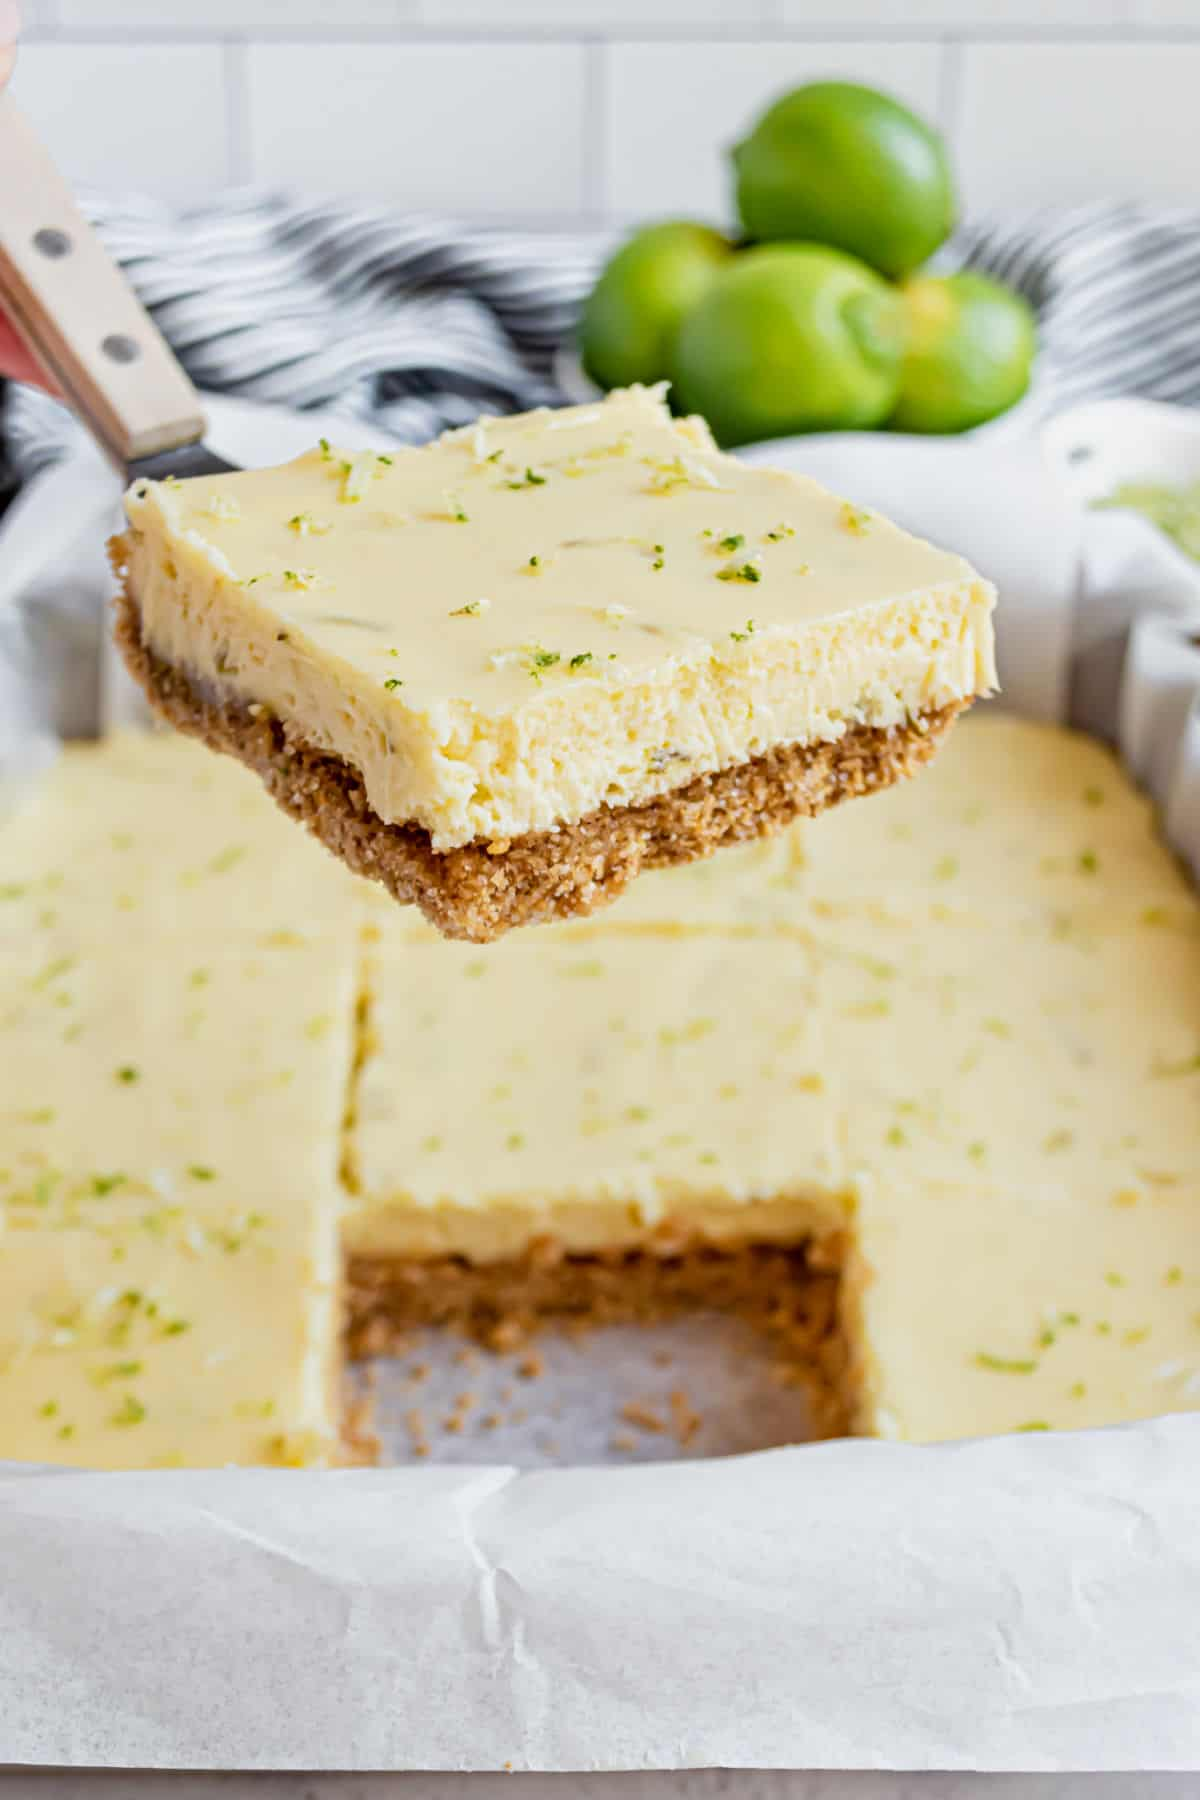 Key lime pie bar on a spatula for serving.